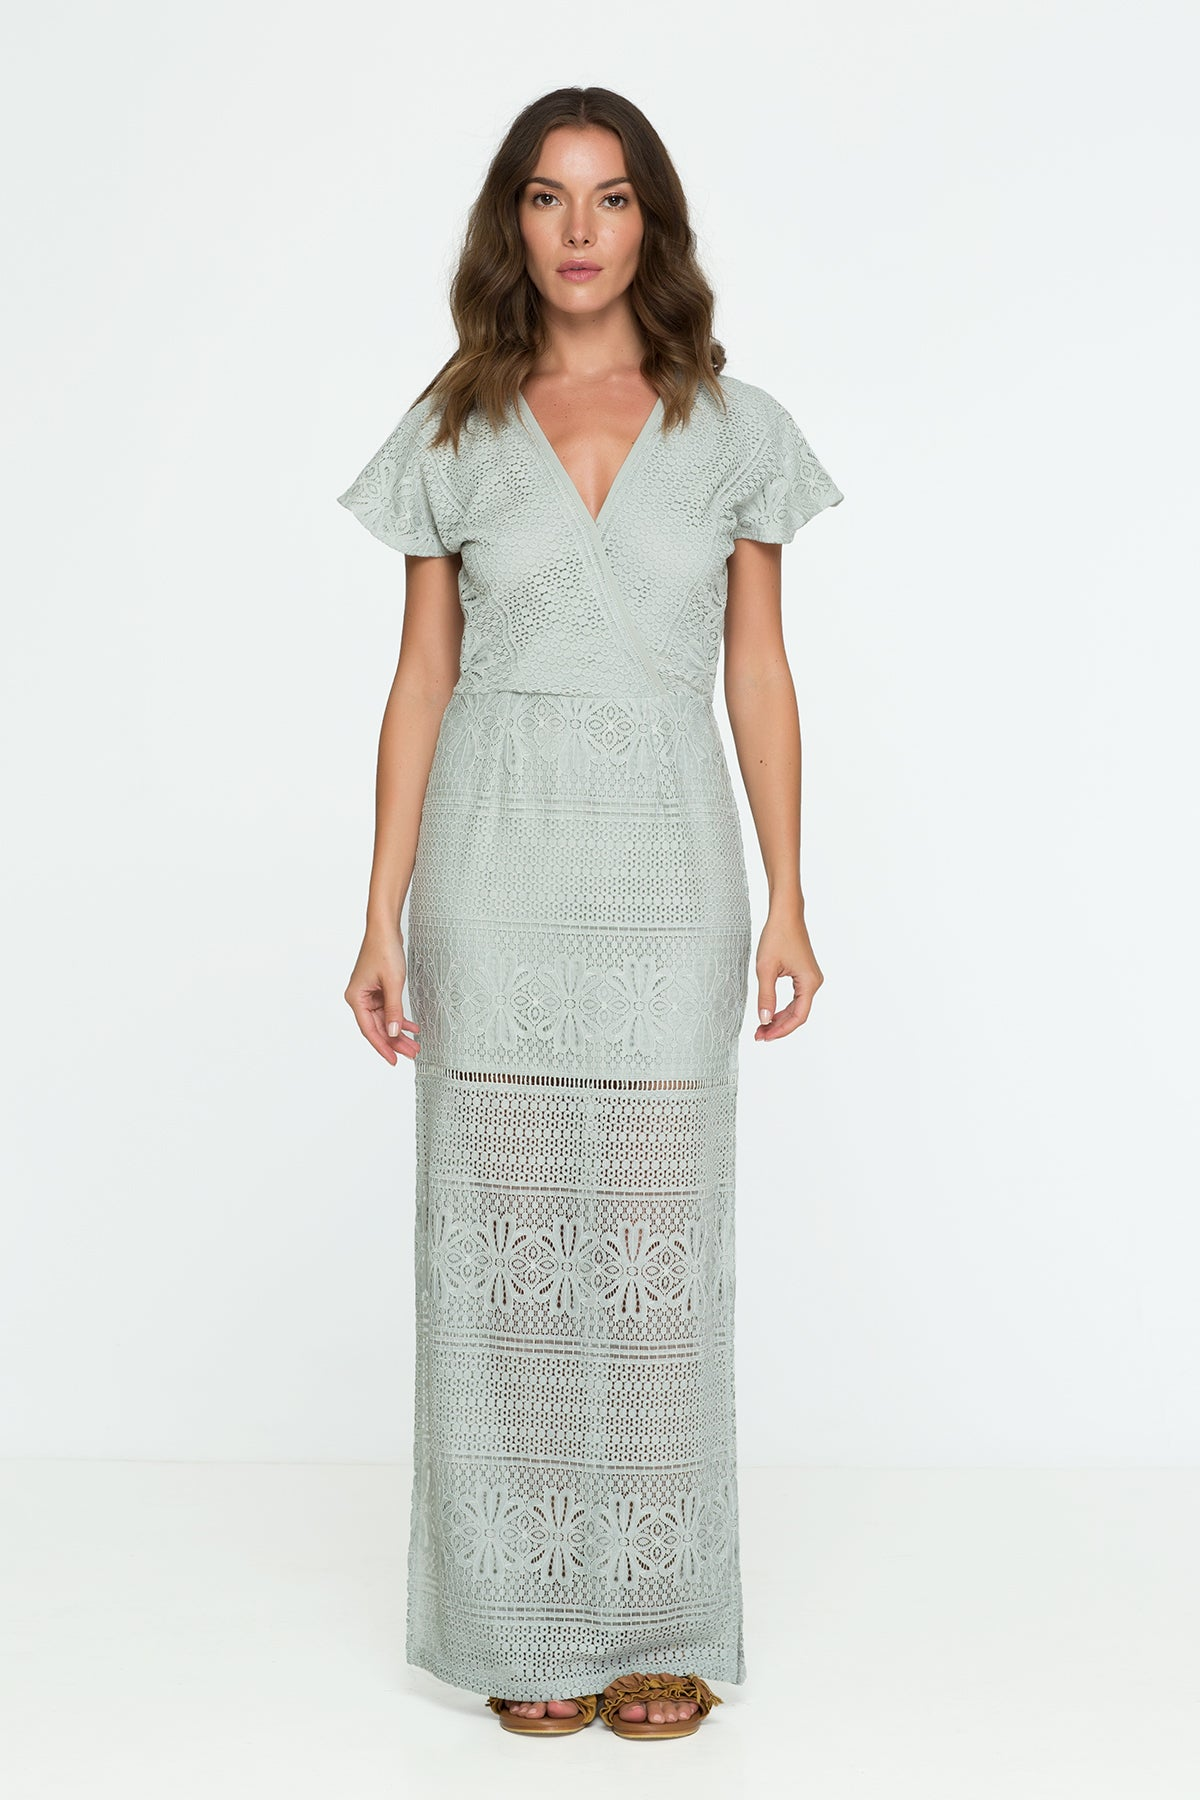 Lace Maxi Dress Wedding Pastel Green Sage